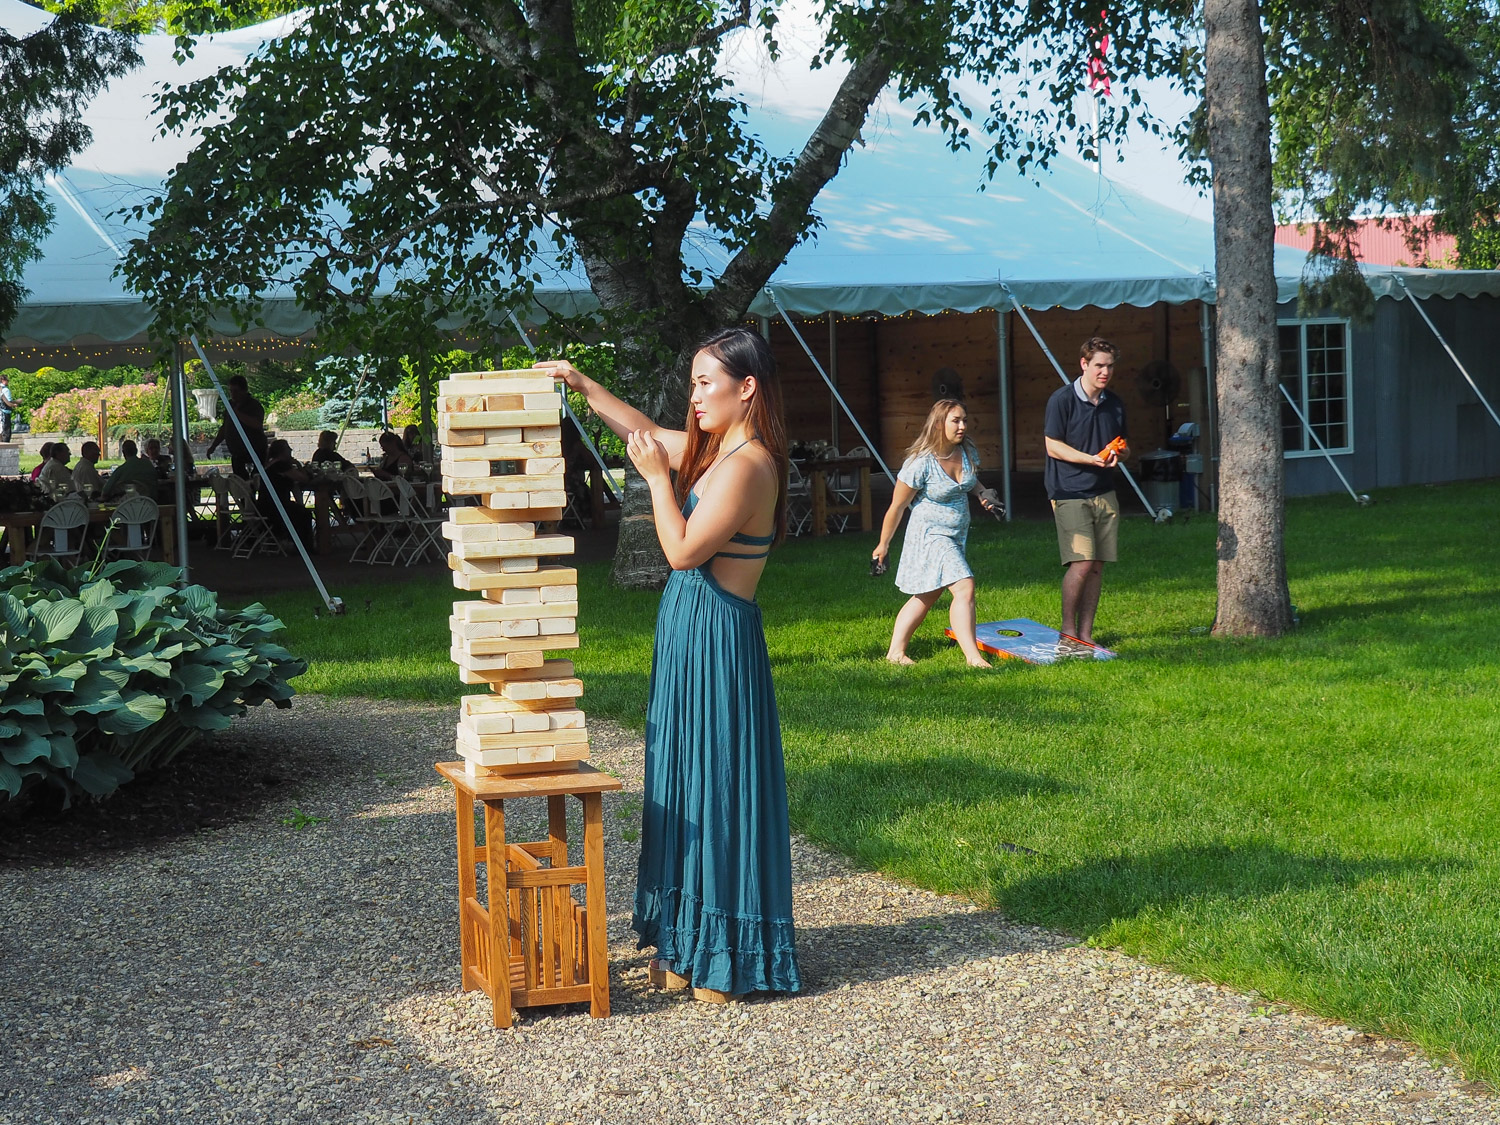 15 Games And Entertainment Ideas For Your Outdoor Wedding The Gardens Of Castle Rock